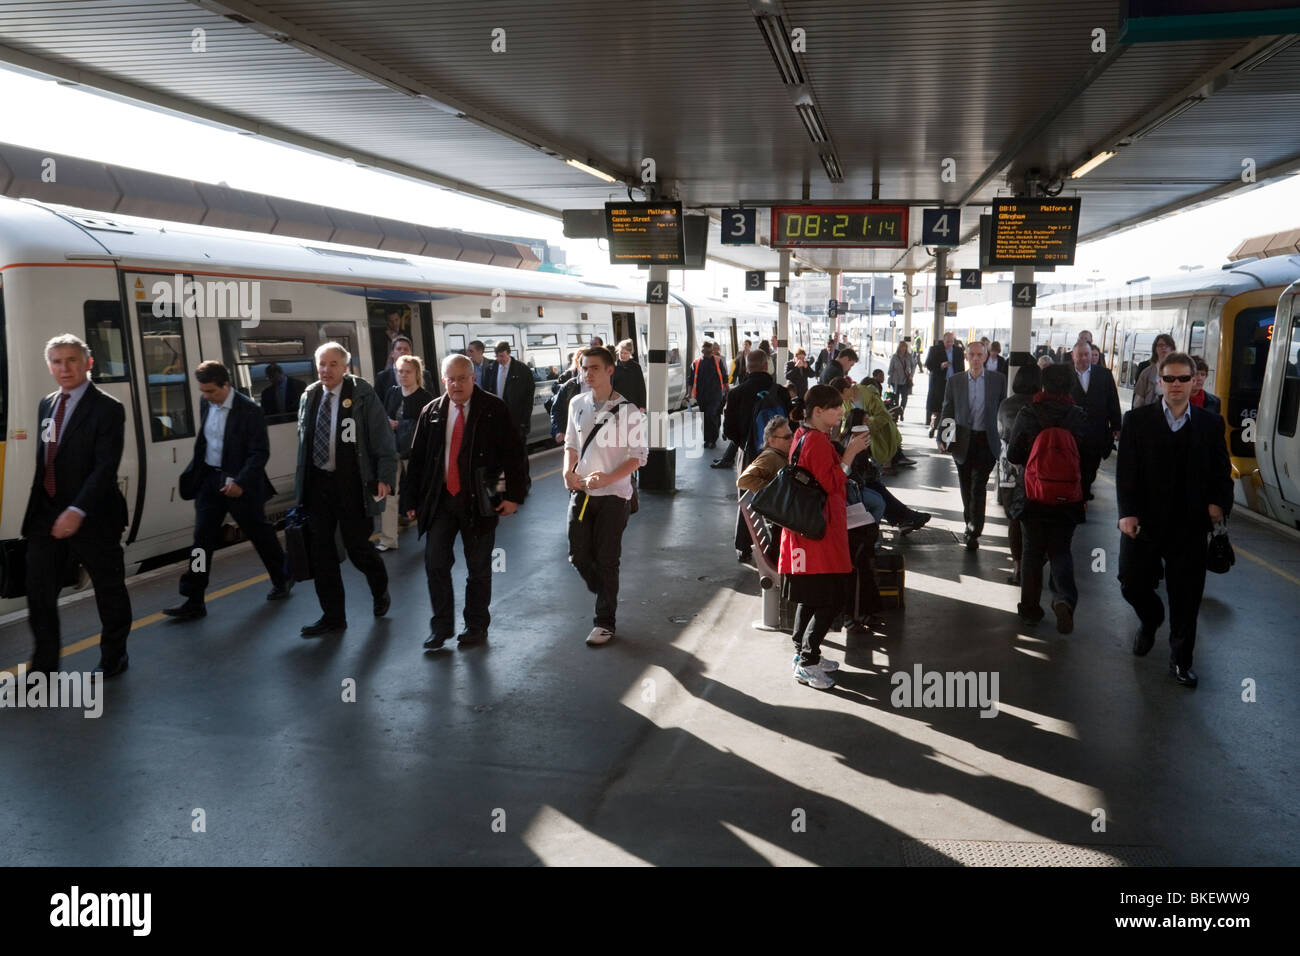 Passengers getting off trains at London Bridge rail station during the morning rush hour, London, UK - Stock Image